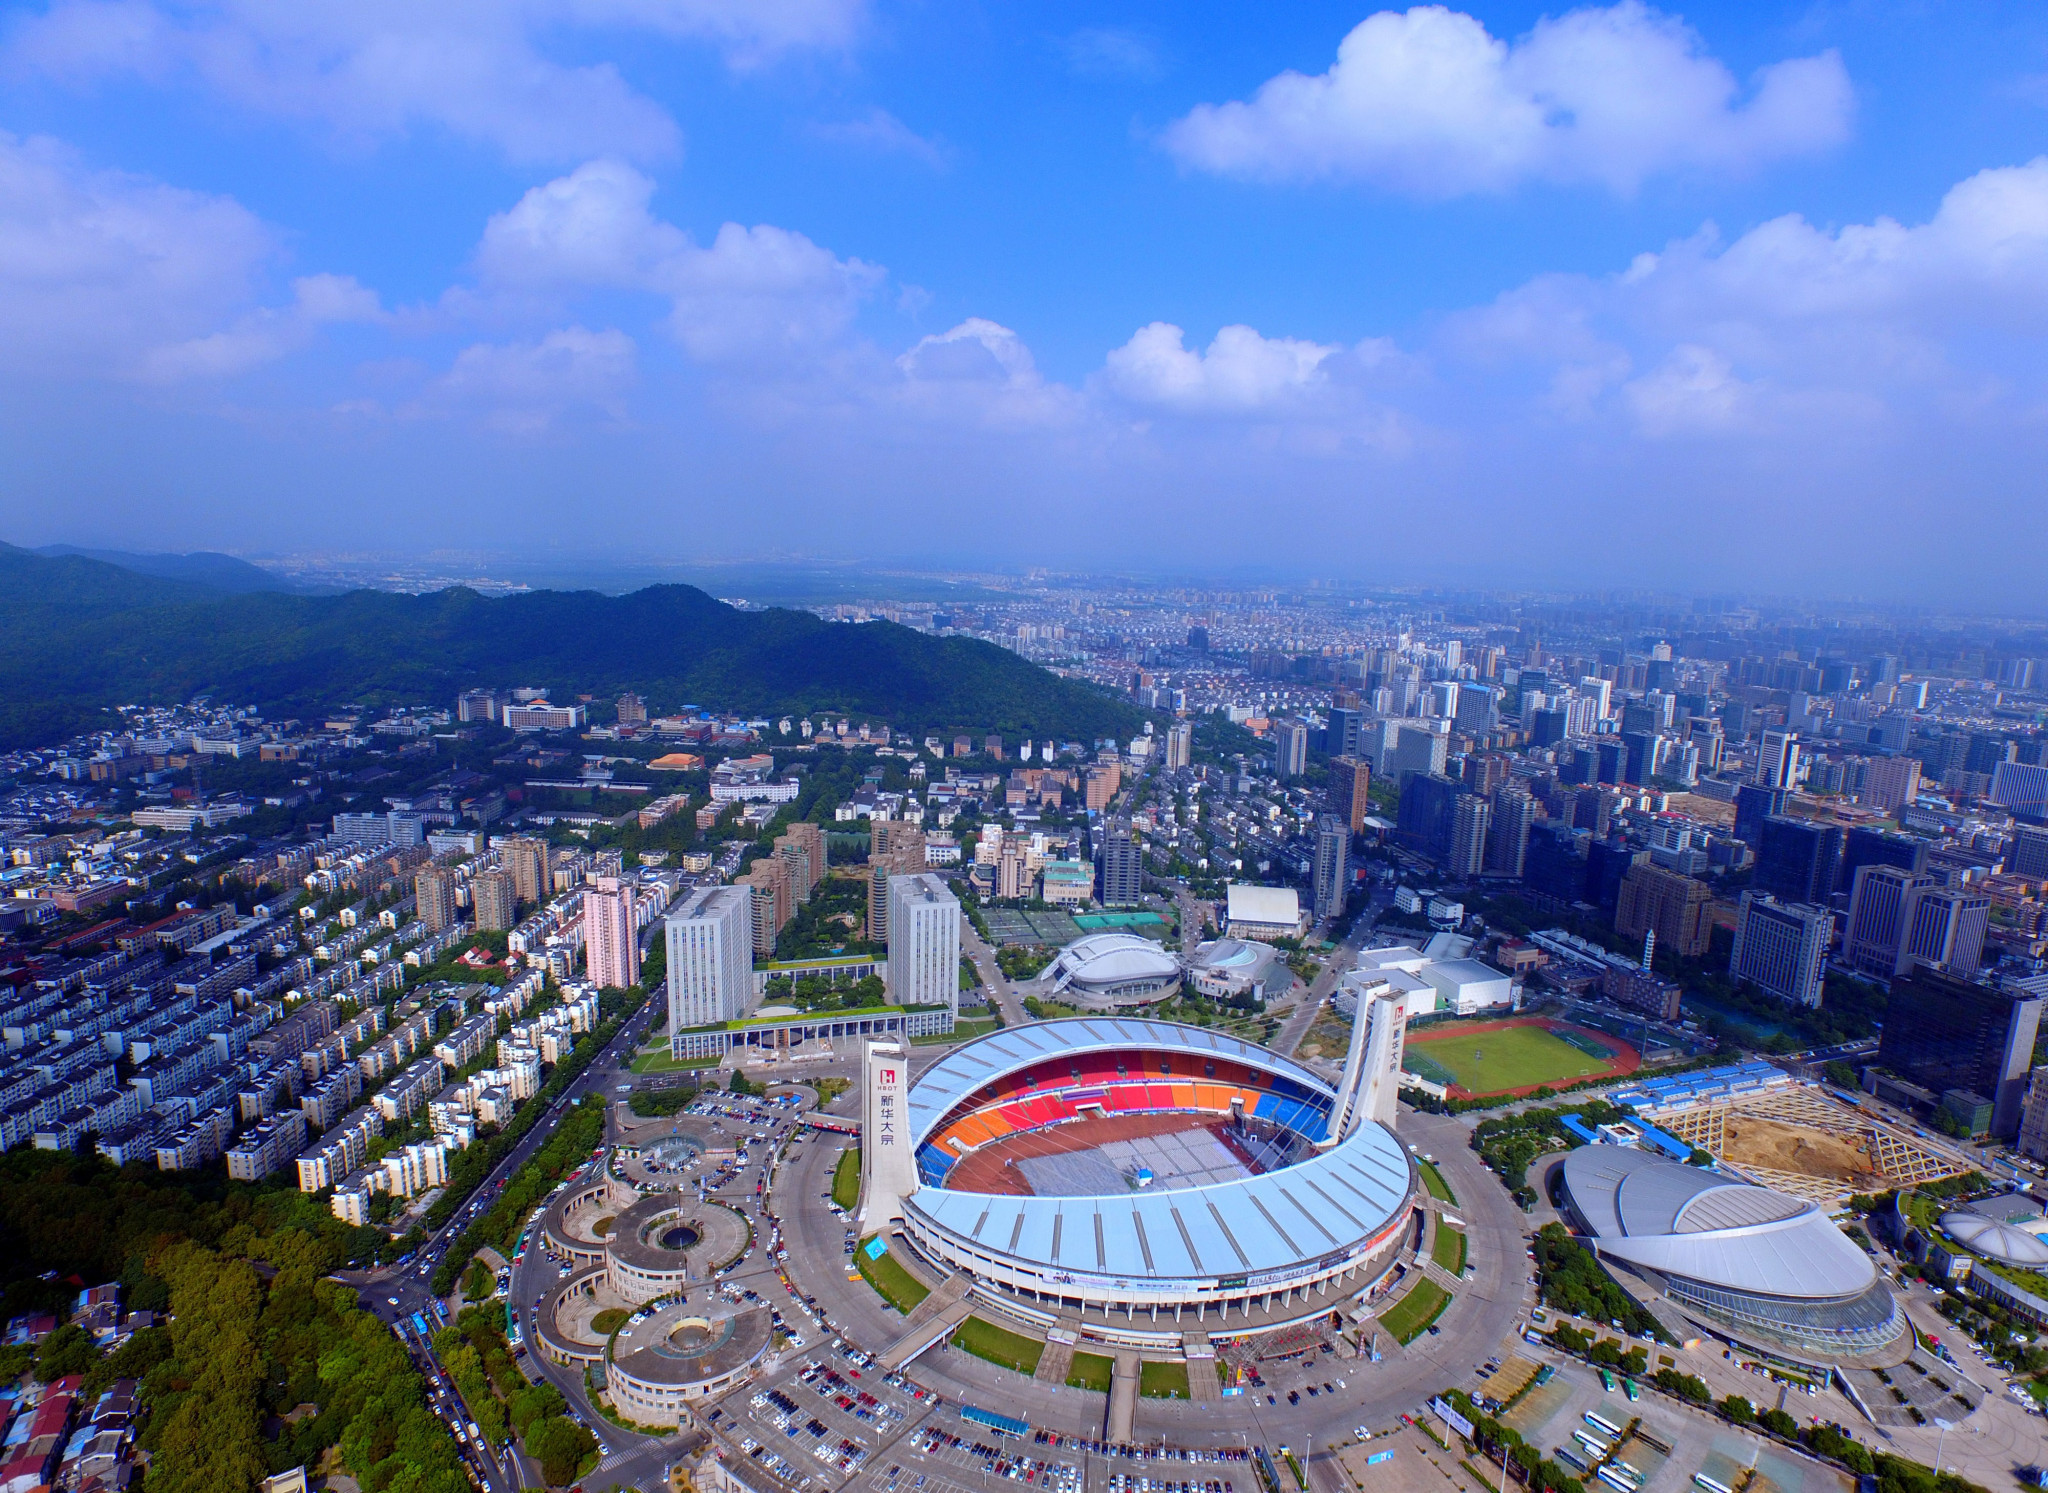 Hangzhou 2022 is due to be the third Asian Games in China ©Getty Images